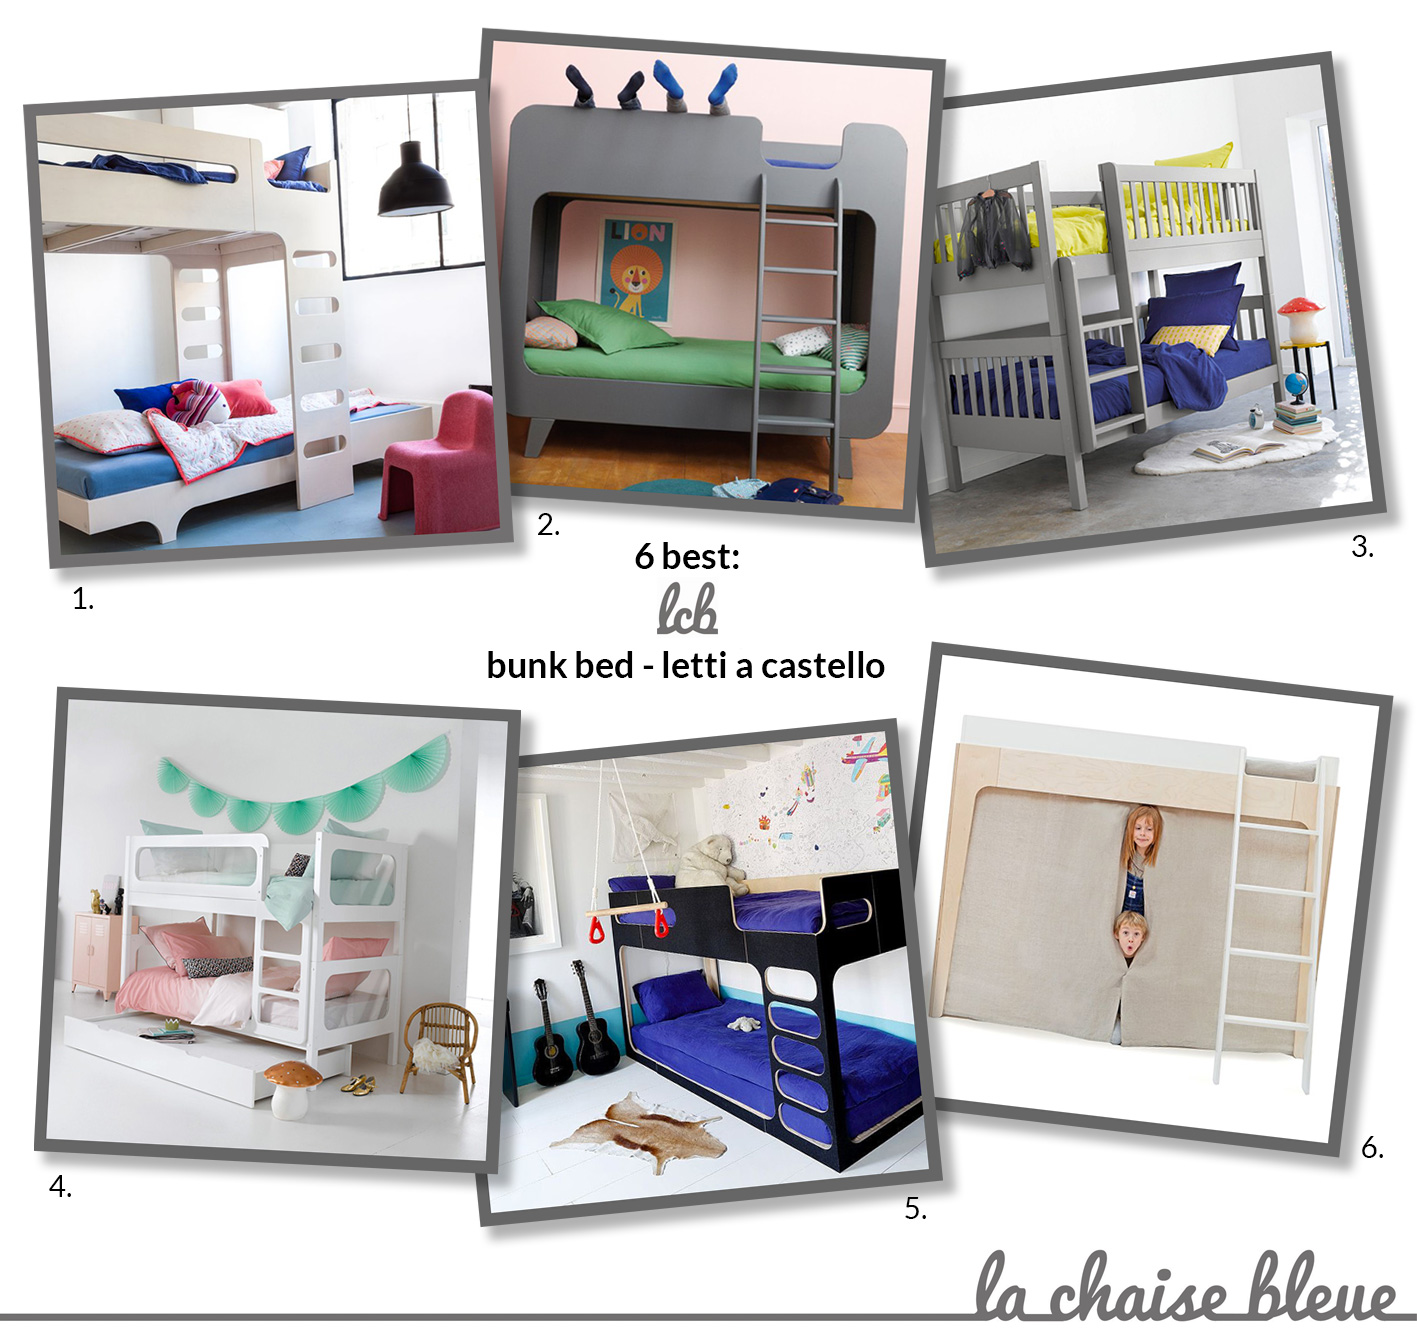 6 best: bunk bed – letti a castello – La Chaise Bleue